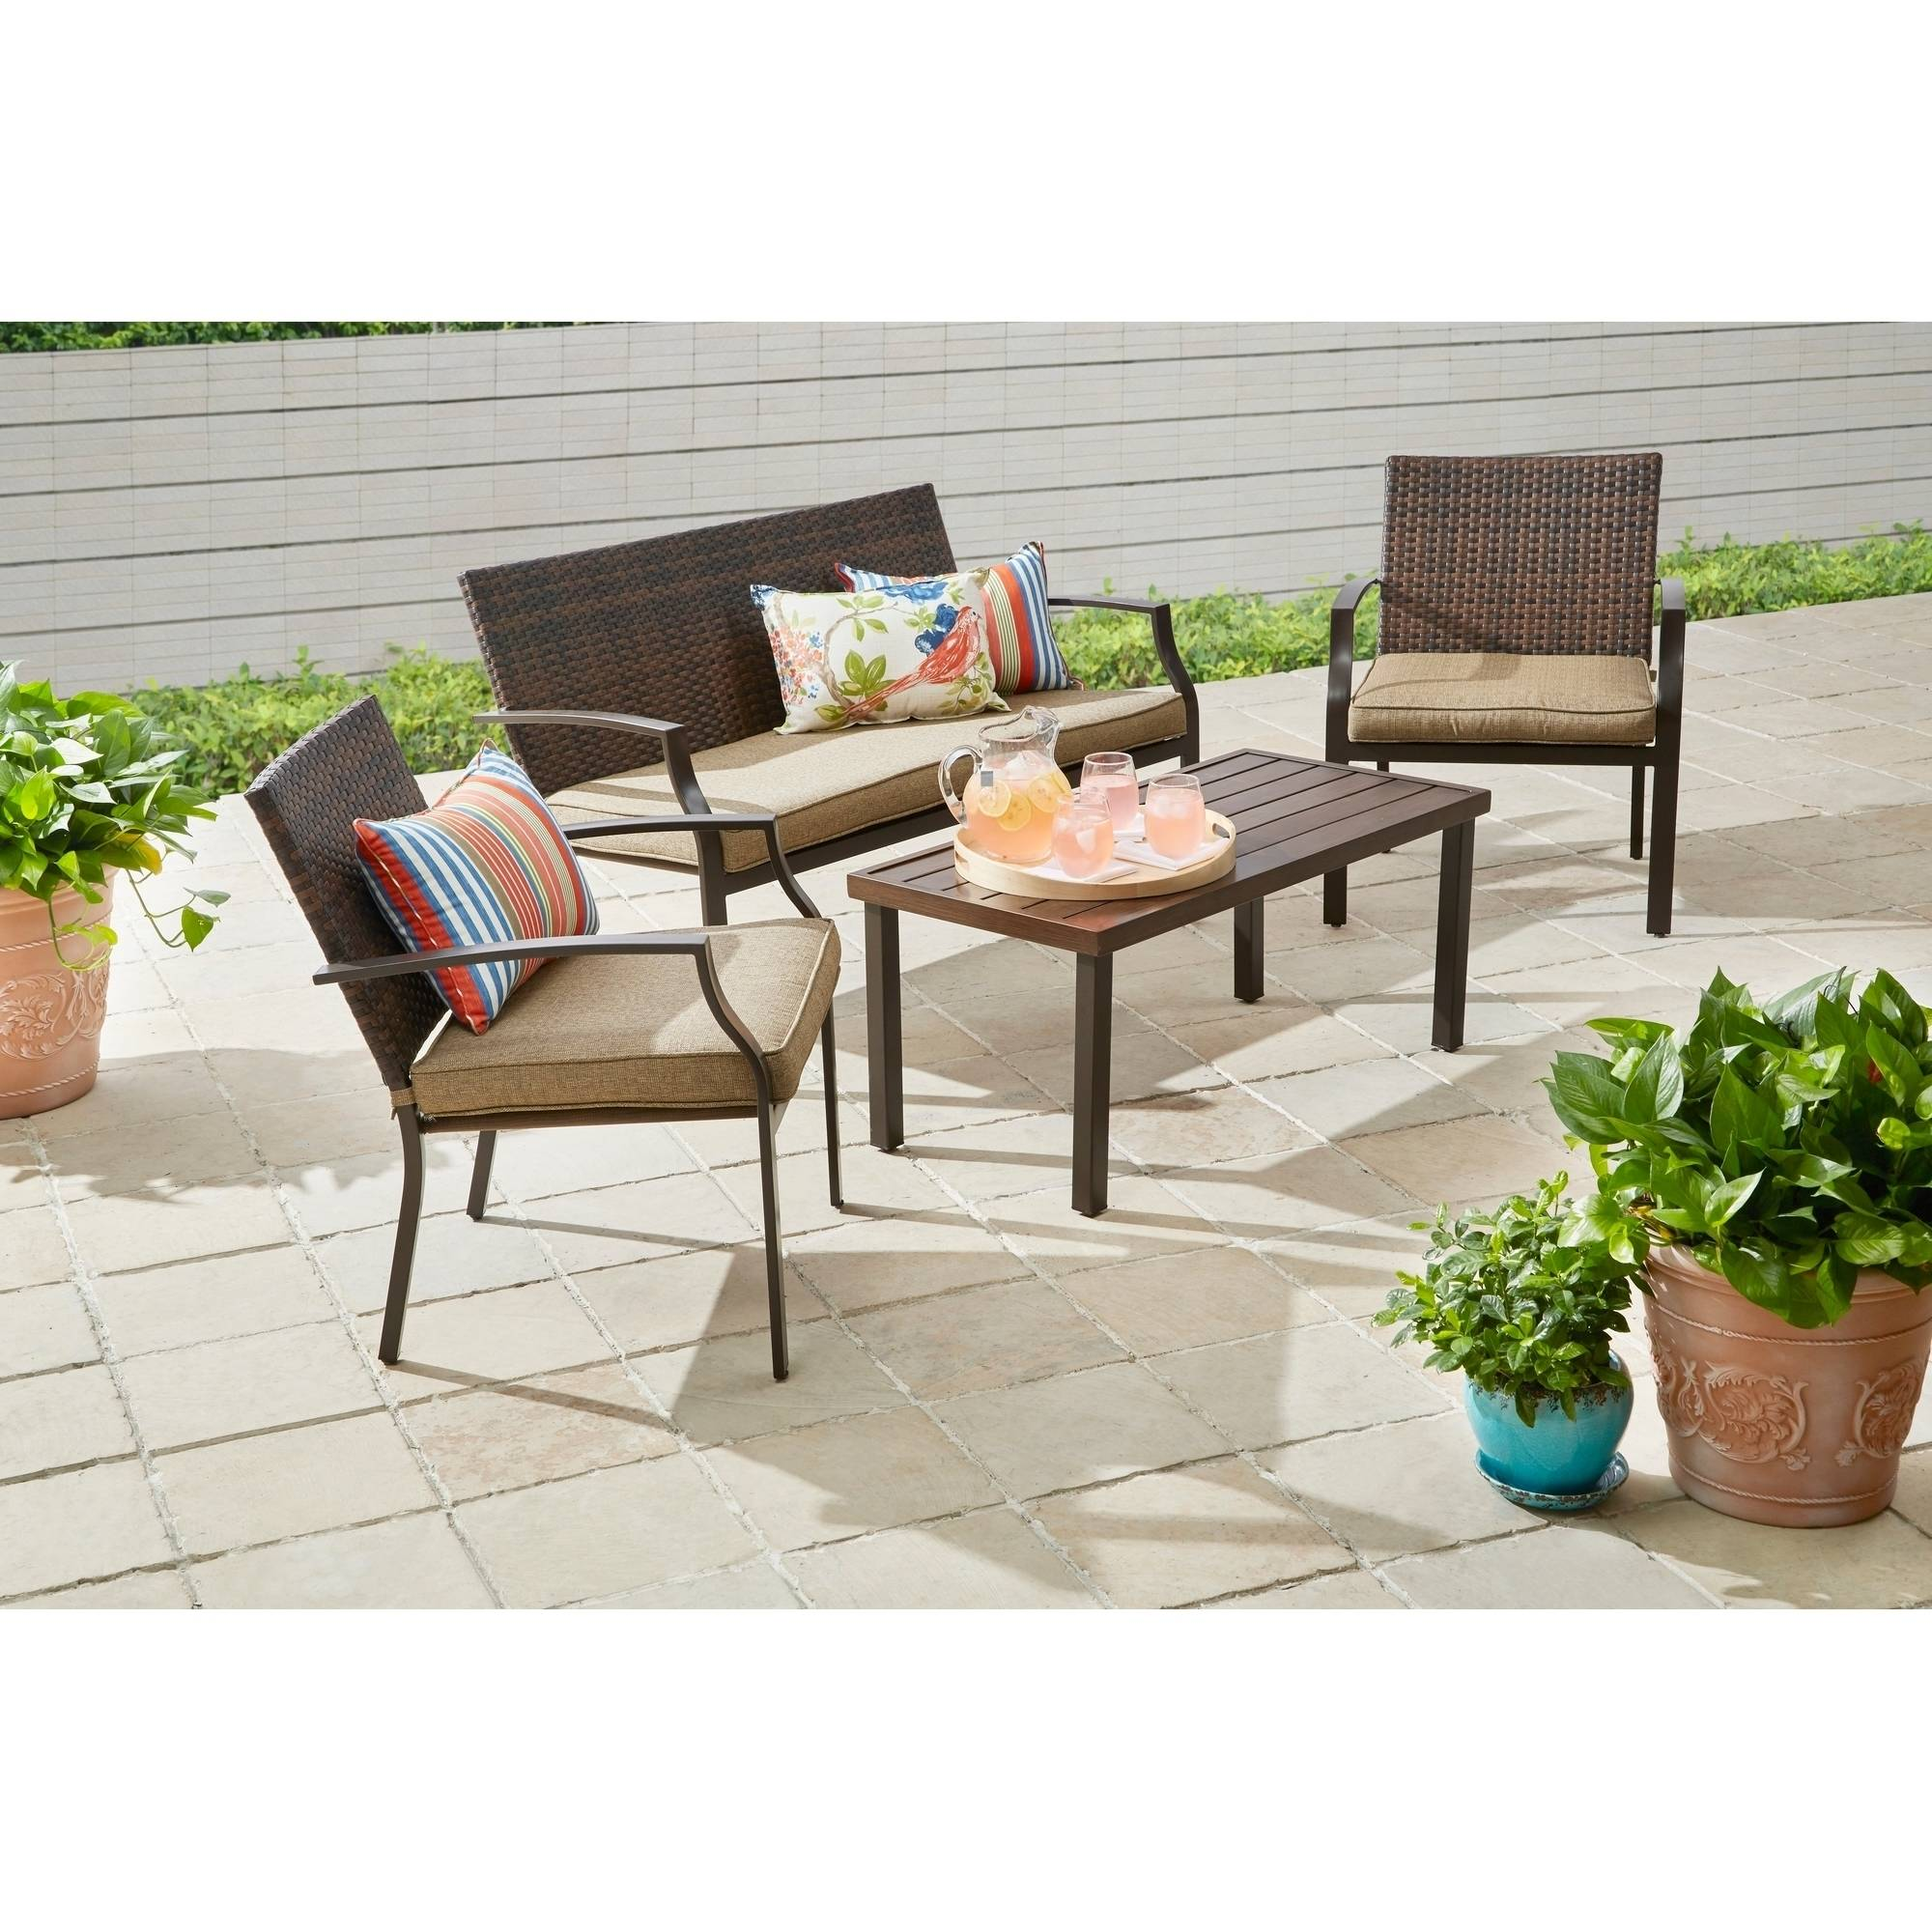 Better Homes And Gardens Wicker Furniture Patio Furniture Handcrafted Outdoor From Epic Better